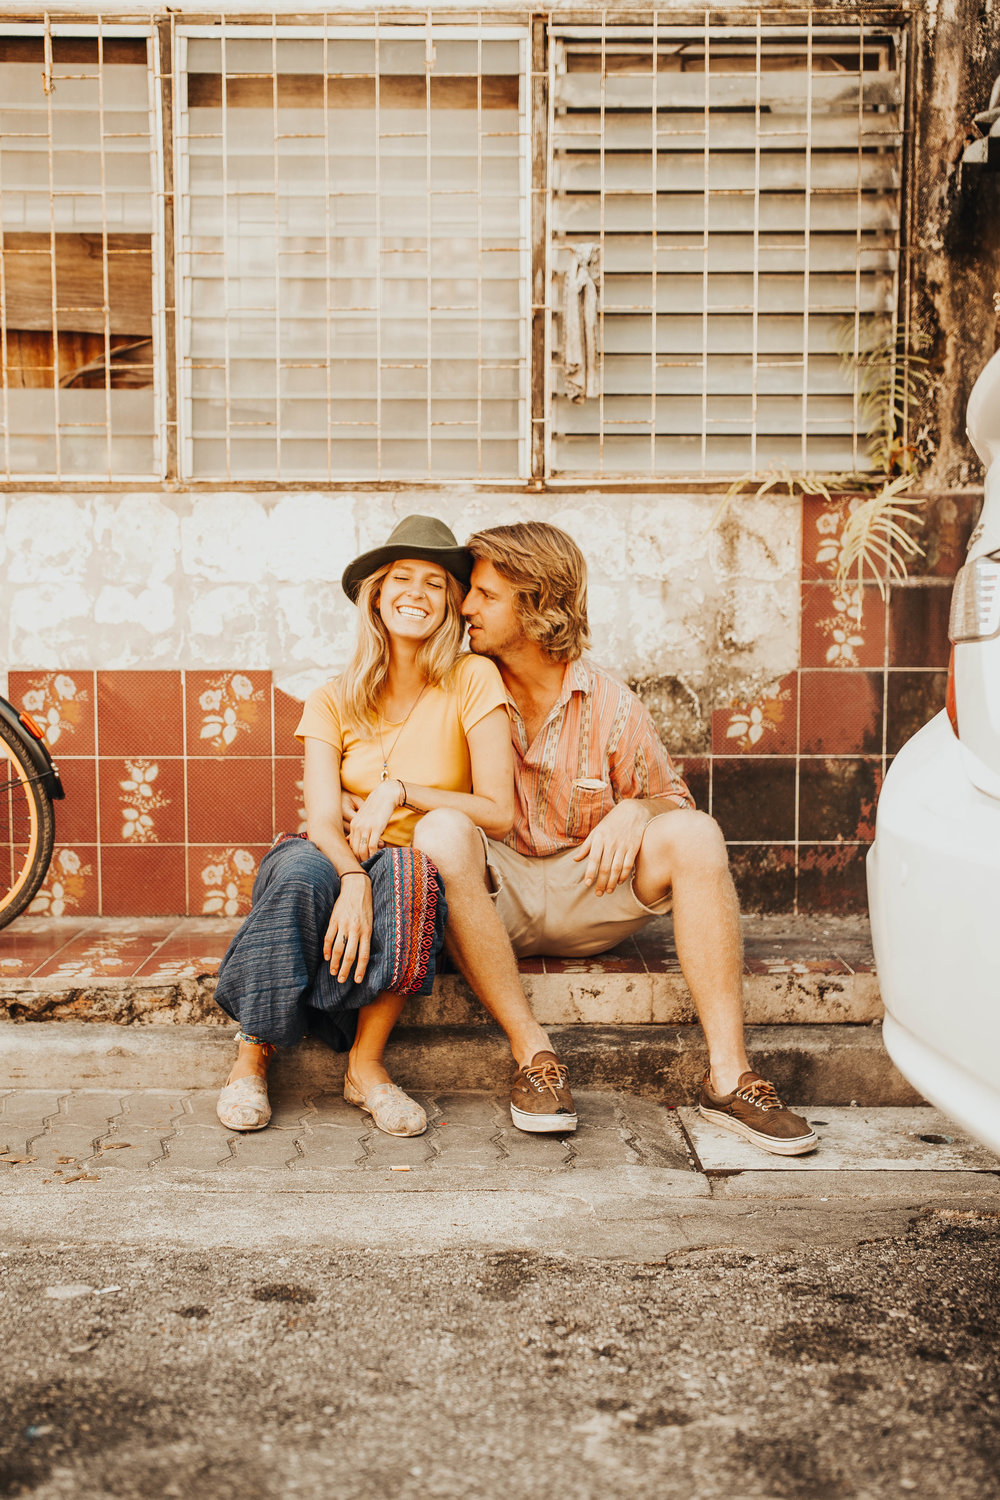 Julie and Will Old Town Phuket Couples Session 25.jpg